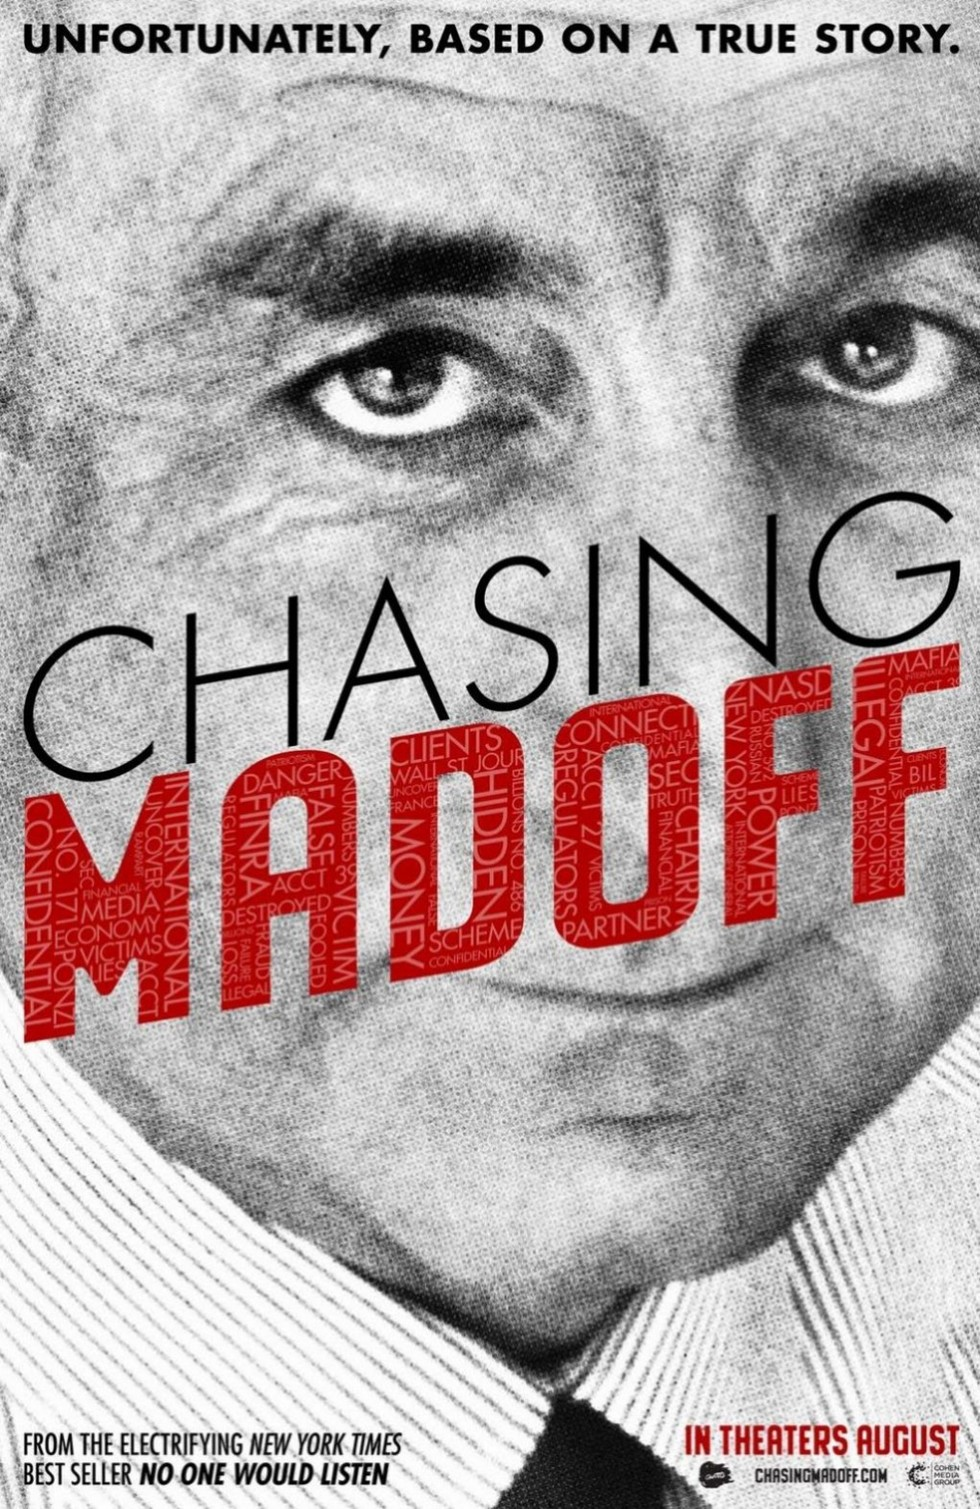 Chasing Madoff - Movie Poster #2 (Large)